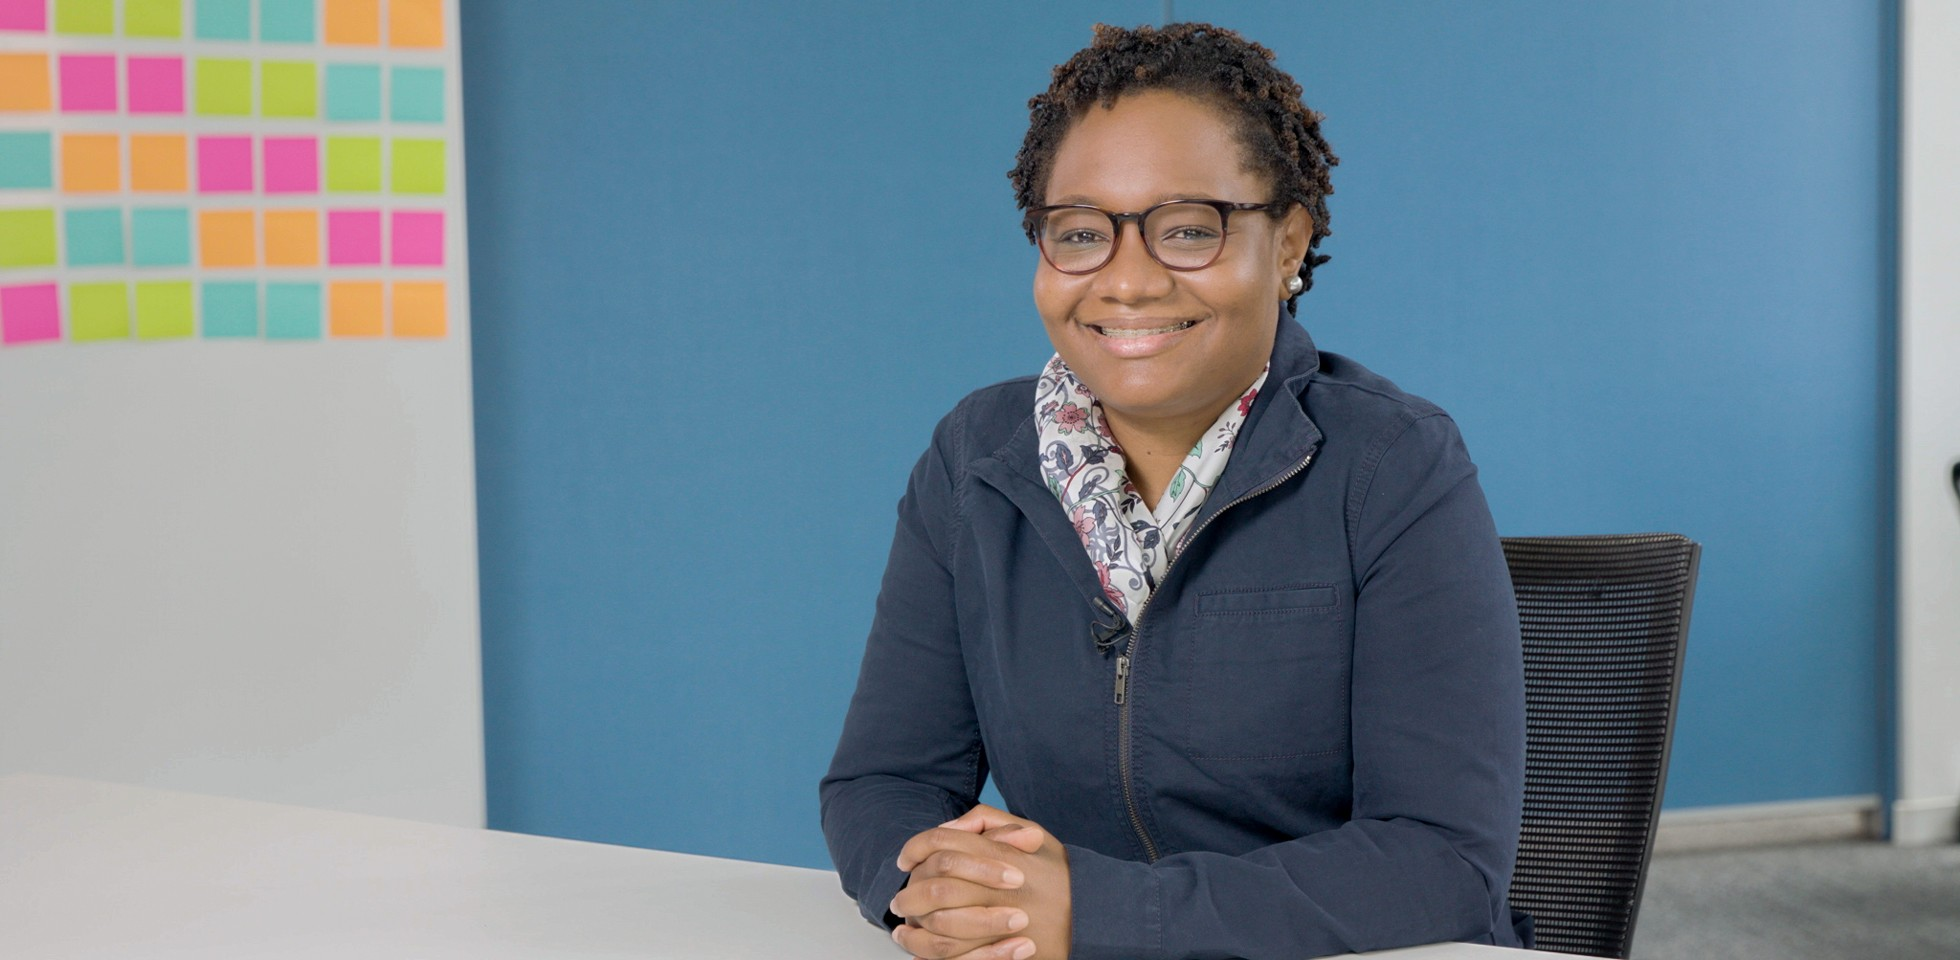 Rashida H., Director, IBM Watson Client Delivery - IBM Careers